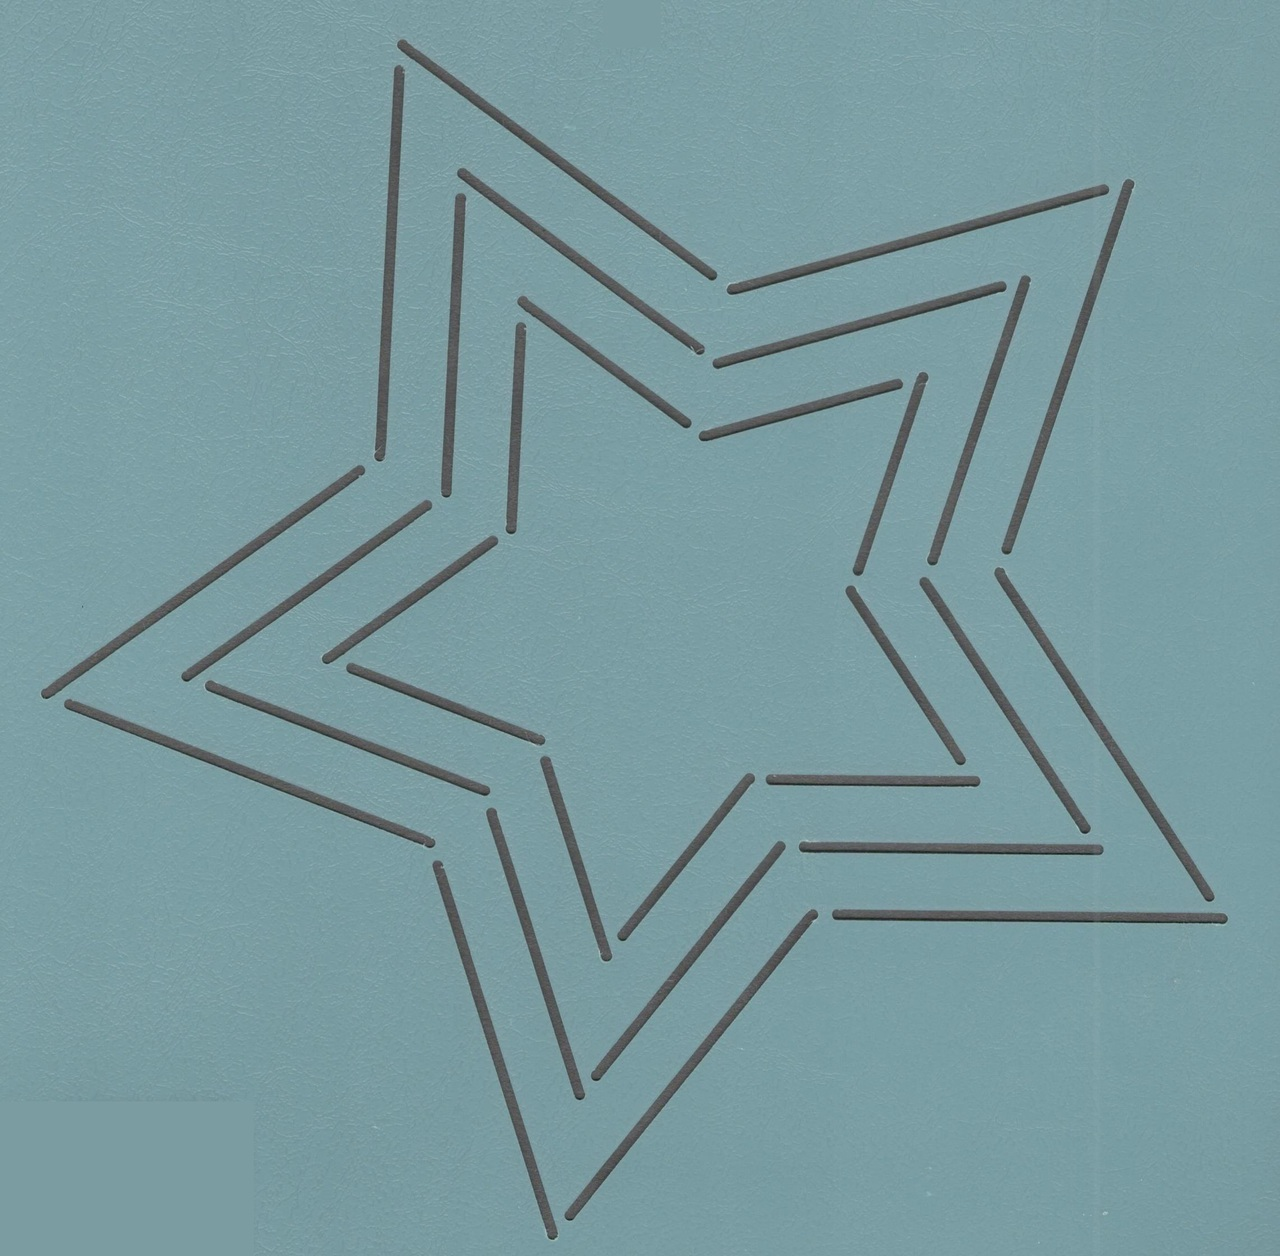 Five Pointed Star 9